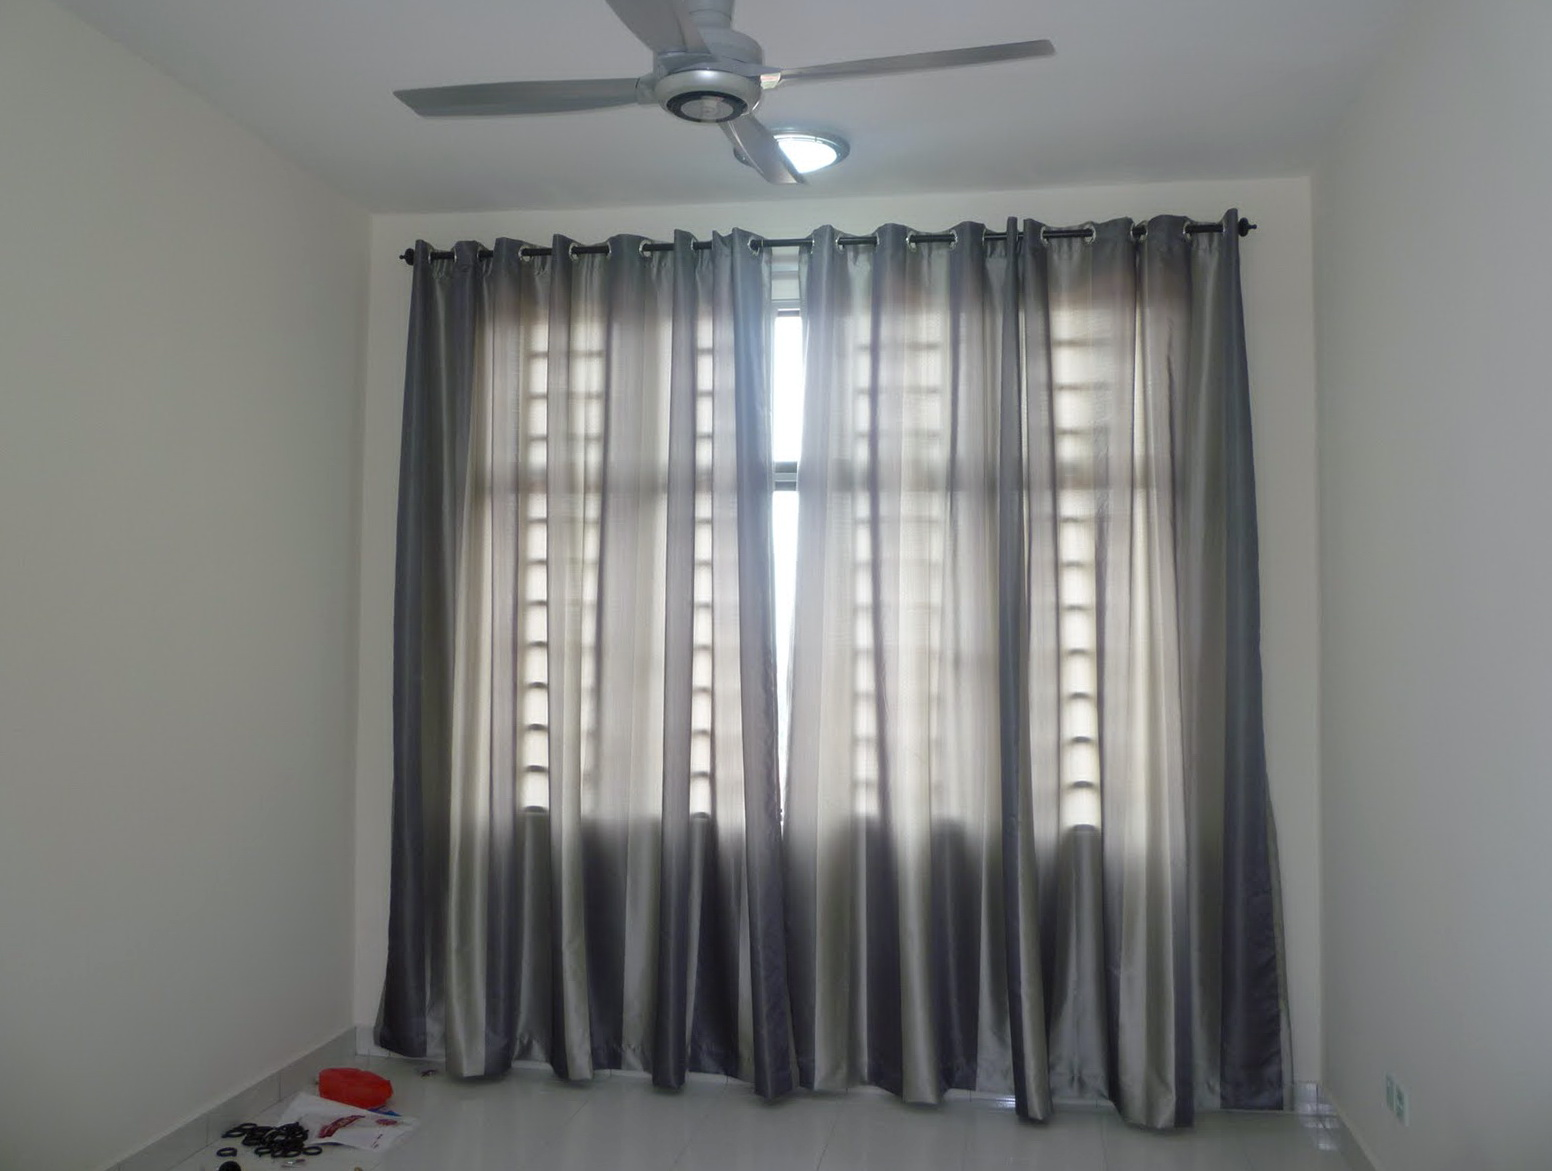 ikea rods the affordable modern home curtain decor outdoor for install